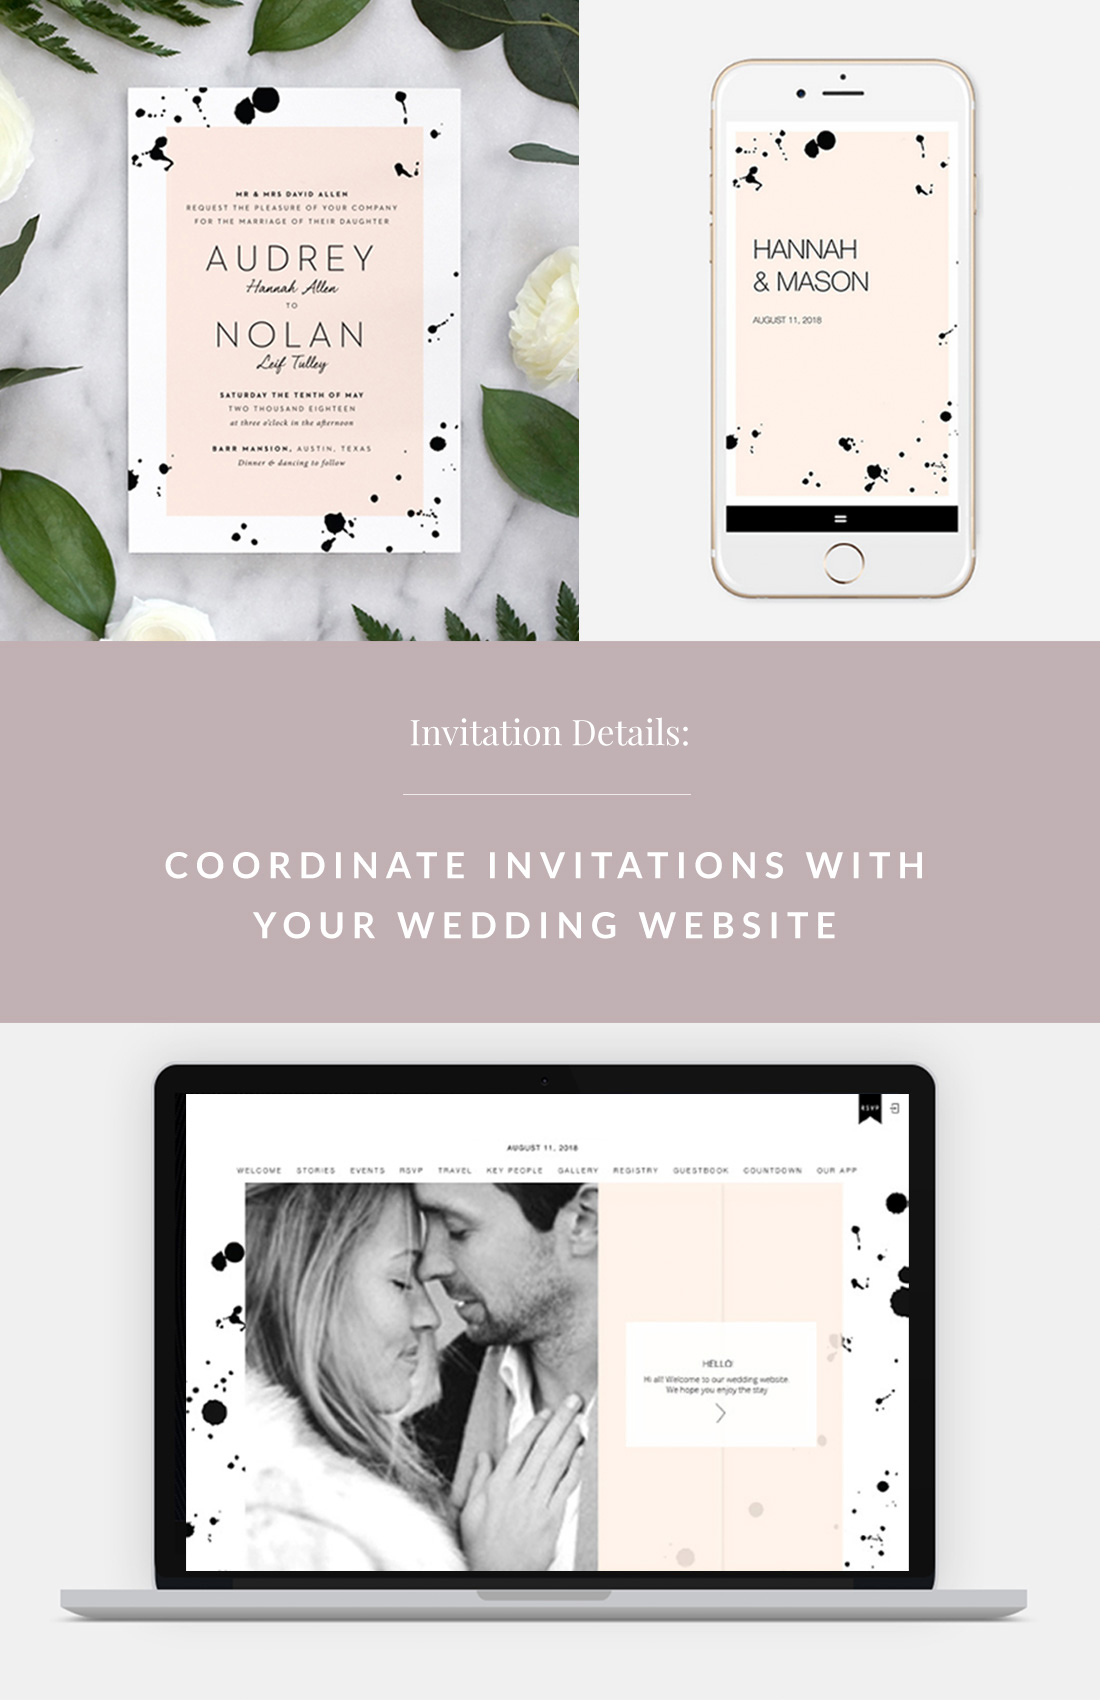 Coordinate Invitations With Your Wedding Website With Fine